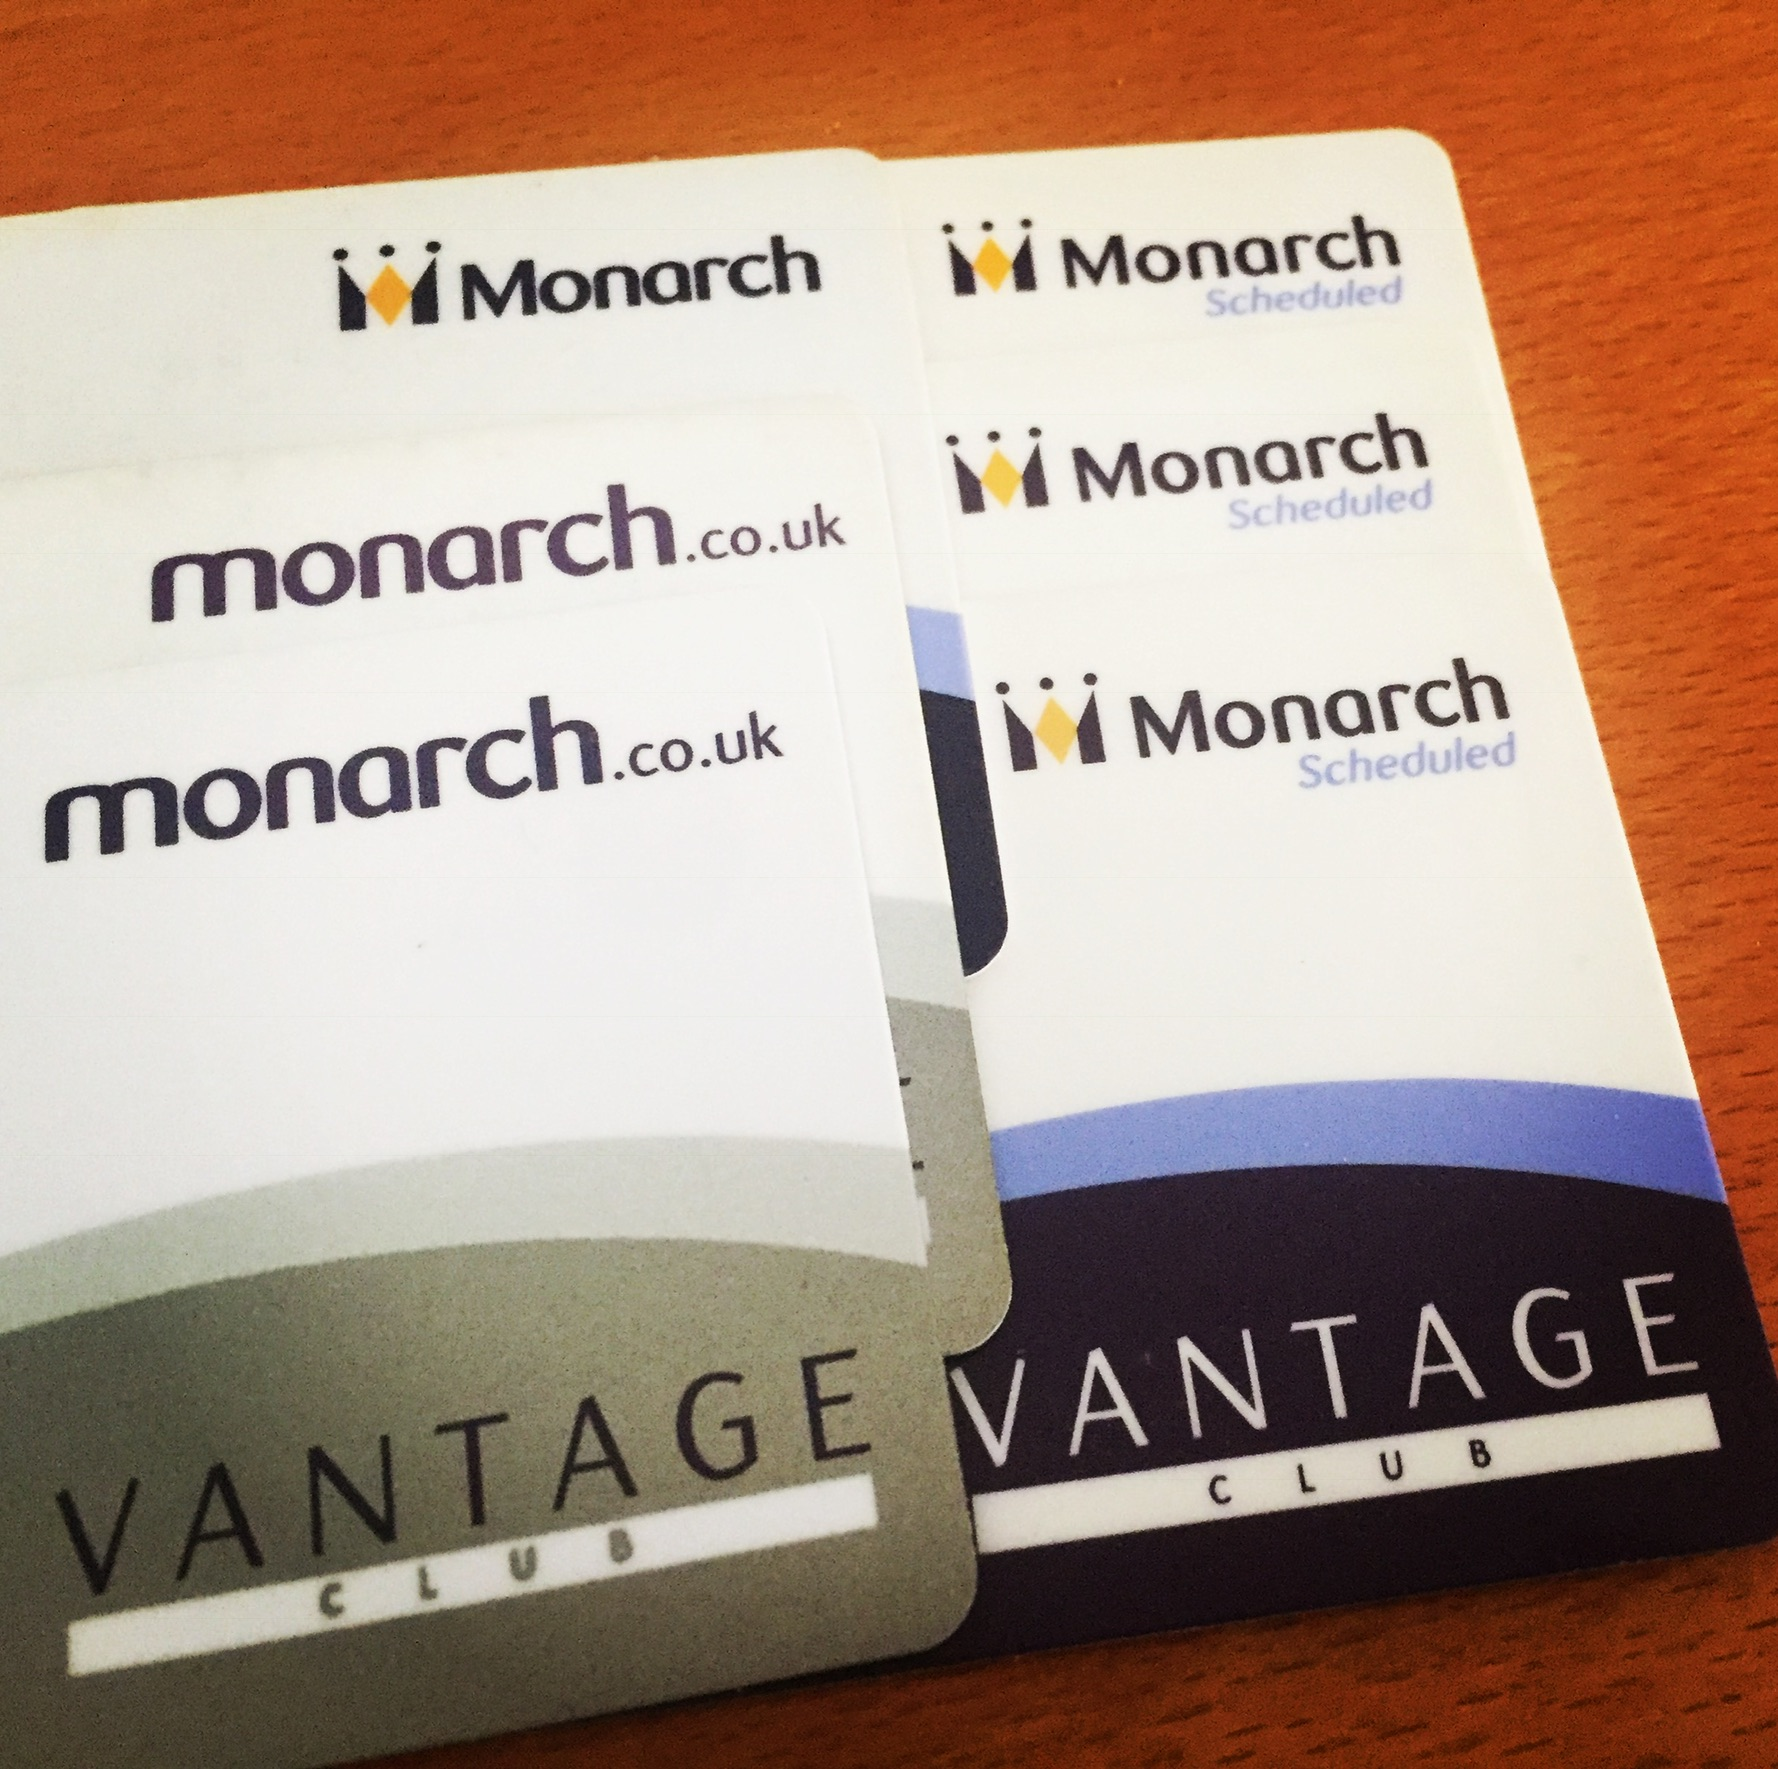 bidding farewell to monarch airlines vantage club